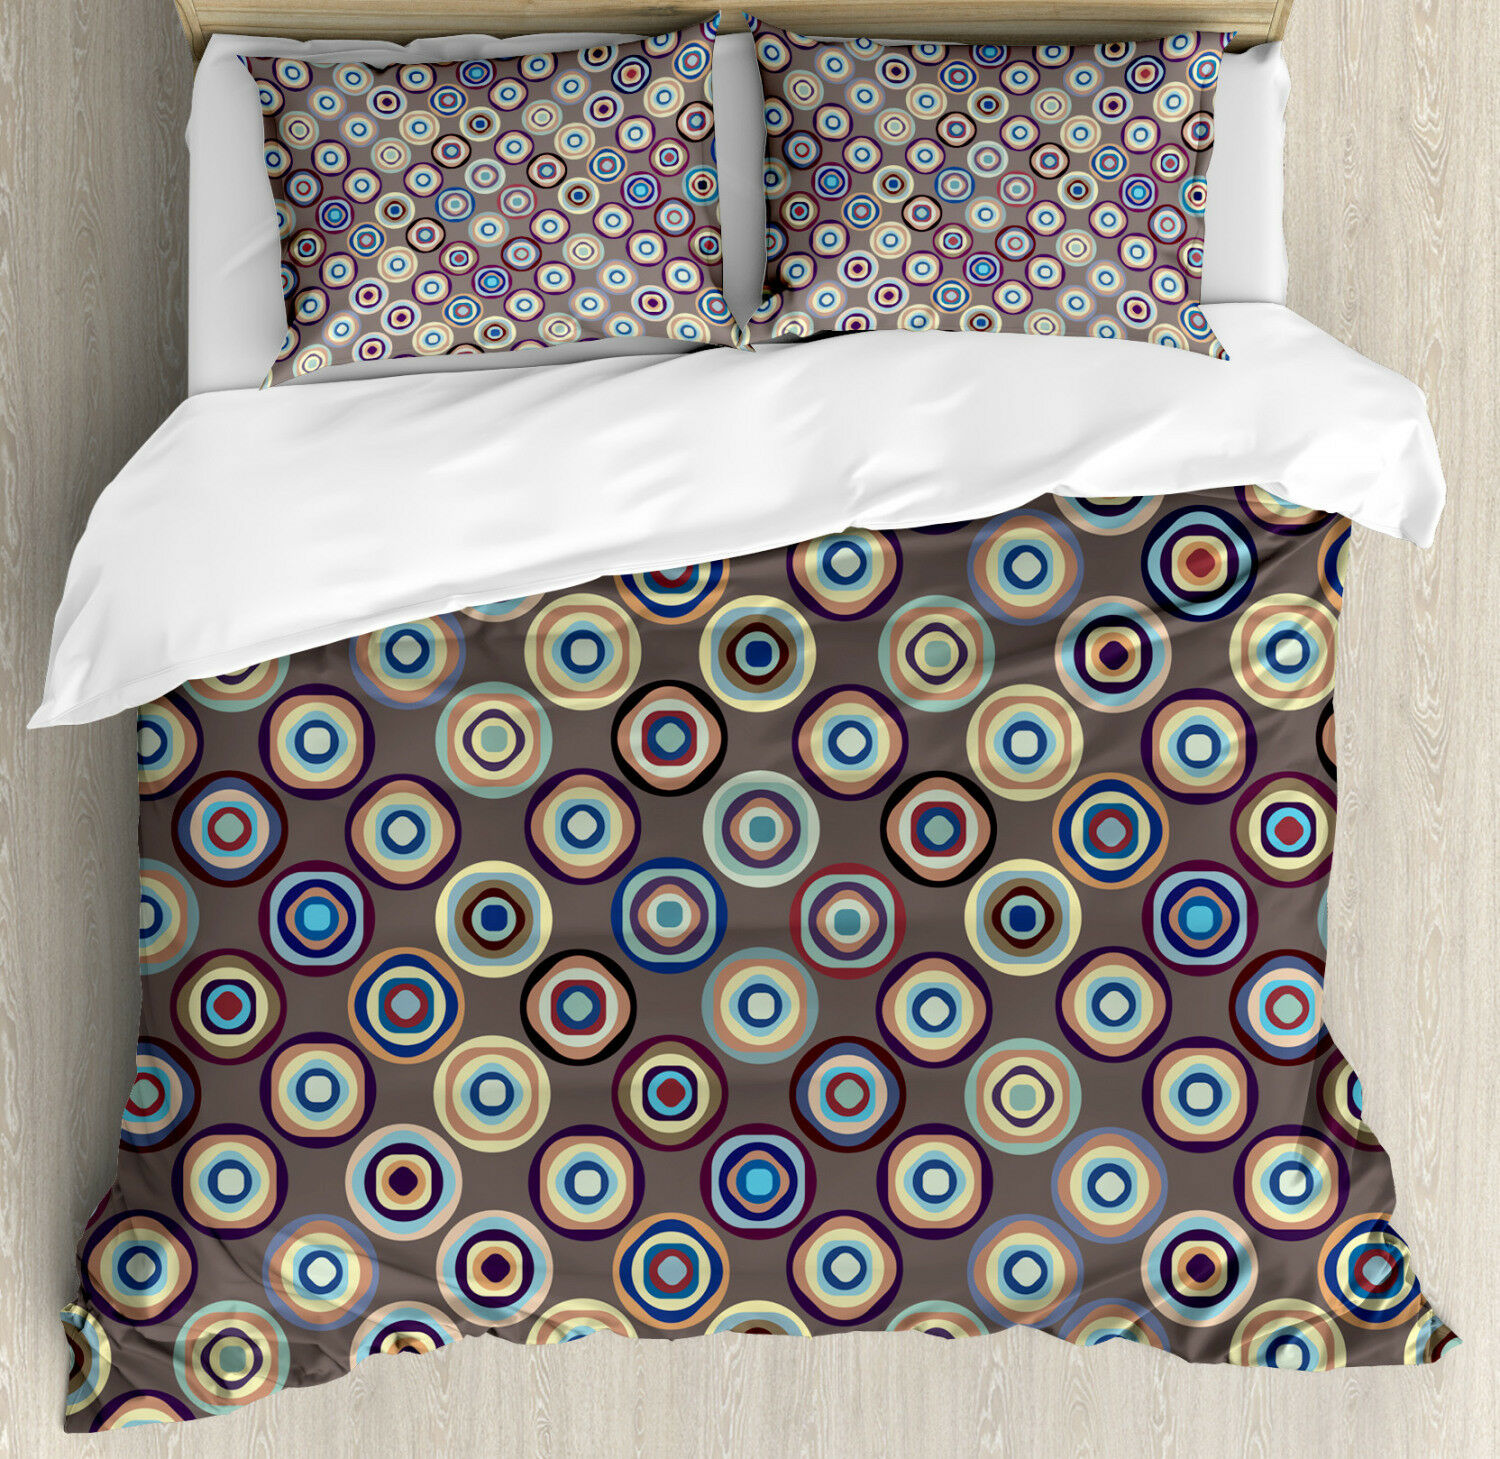 Geometric Duvet Cover Set with Pillow Shams Abstract Big Dots Print